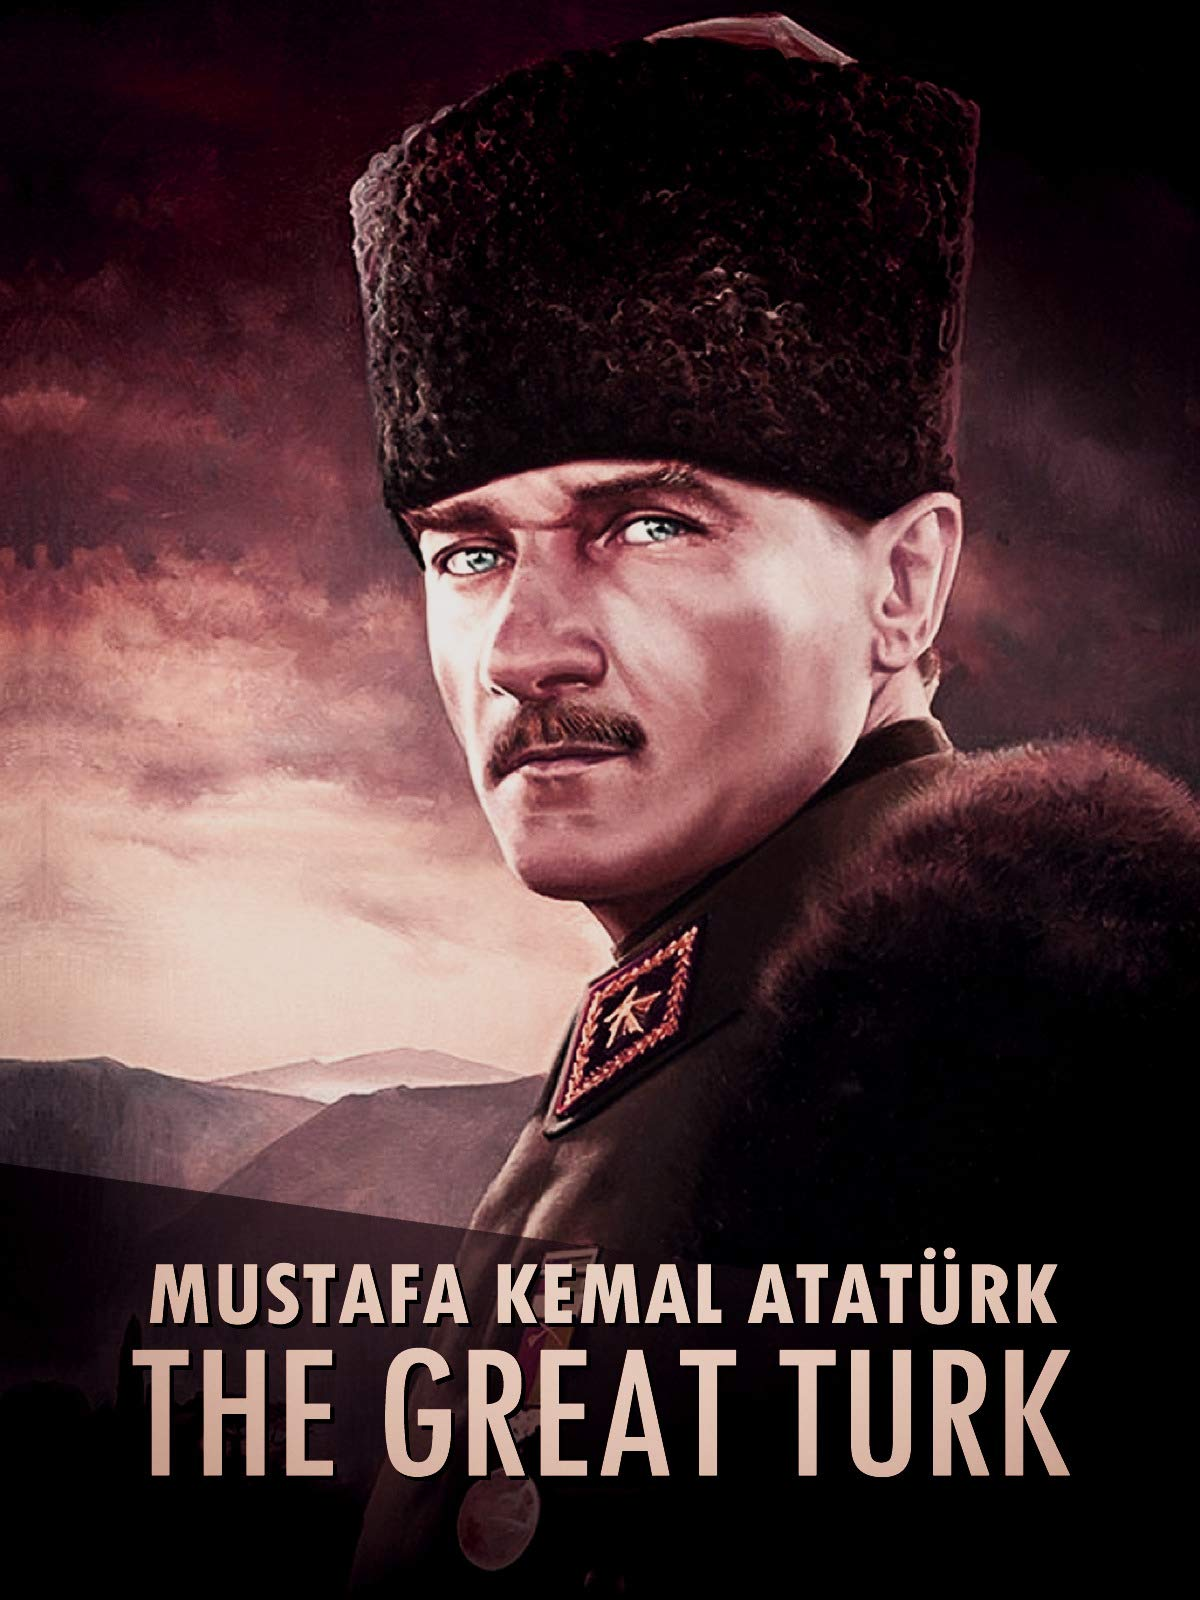 Mustafa Kemal Atatürk: The Great Turk on Amazon Prime Video UK